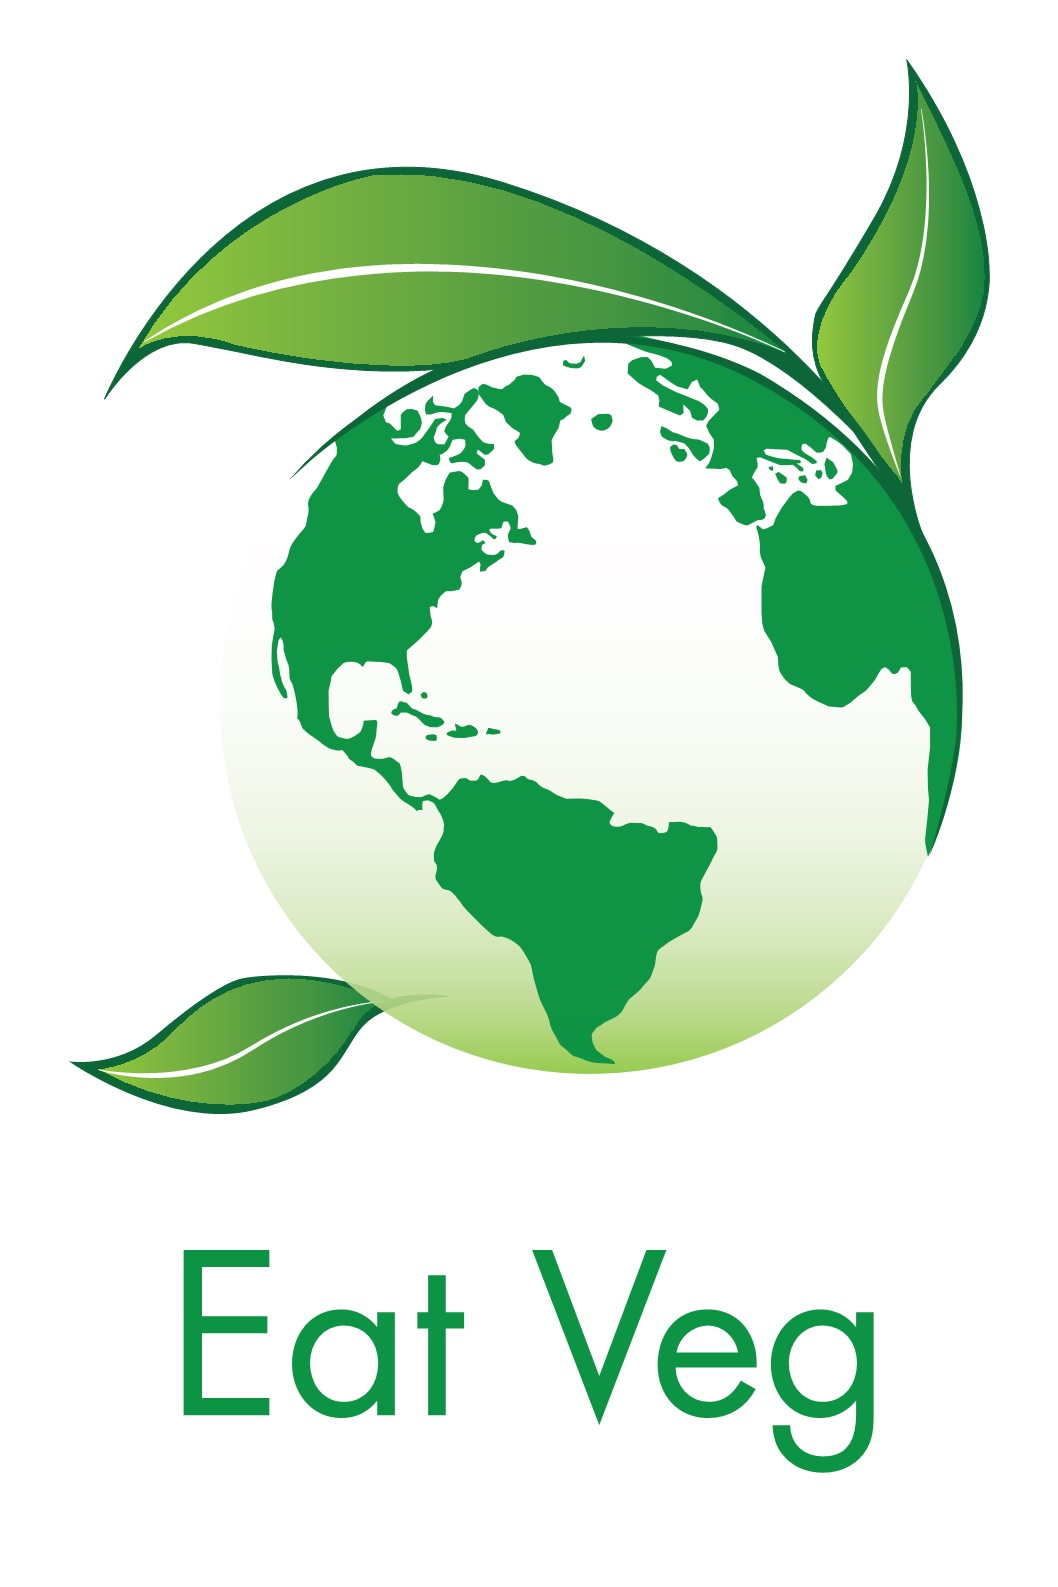 Eat Veg Srl - Latina